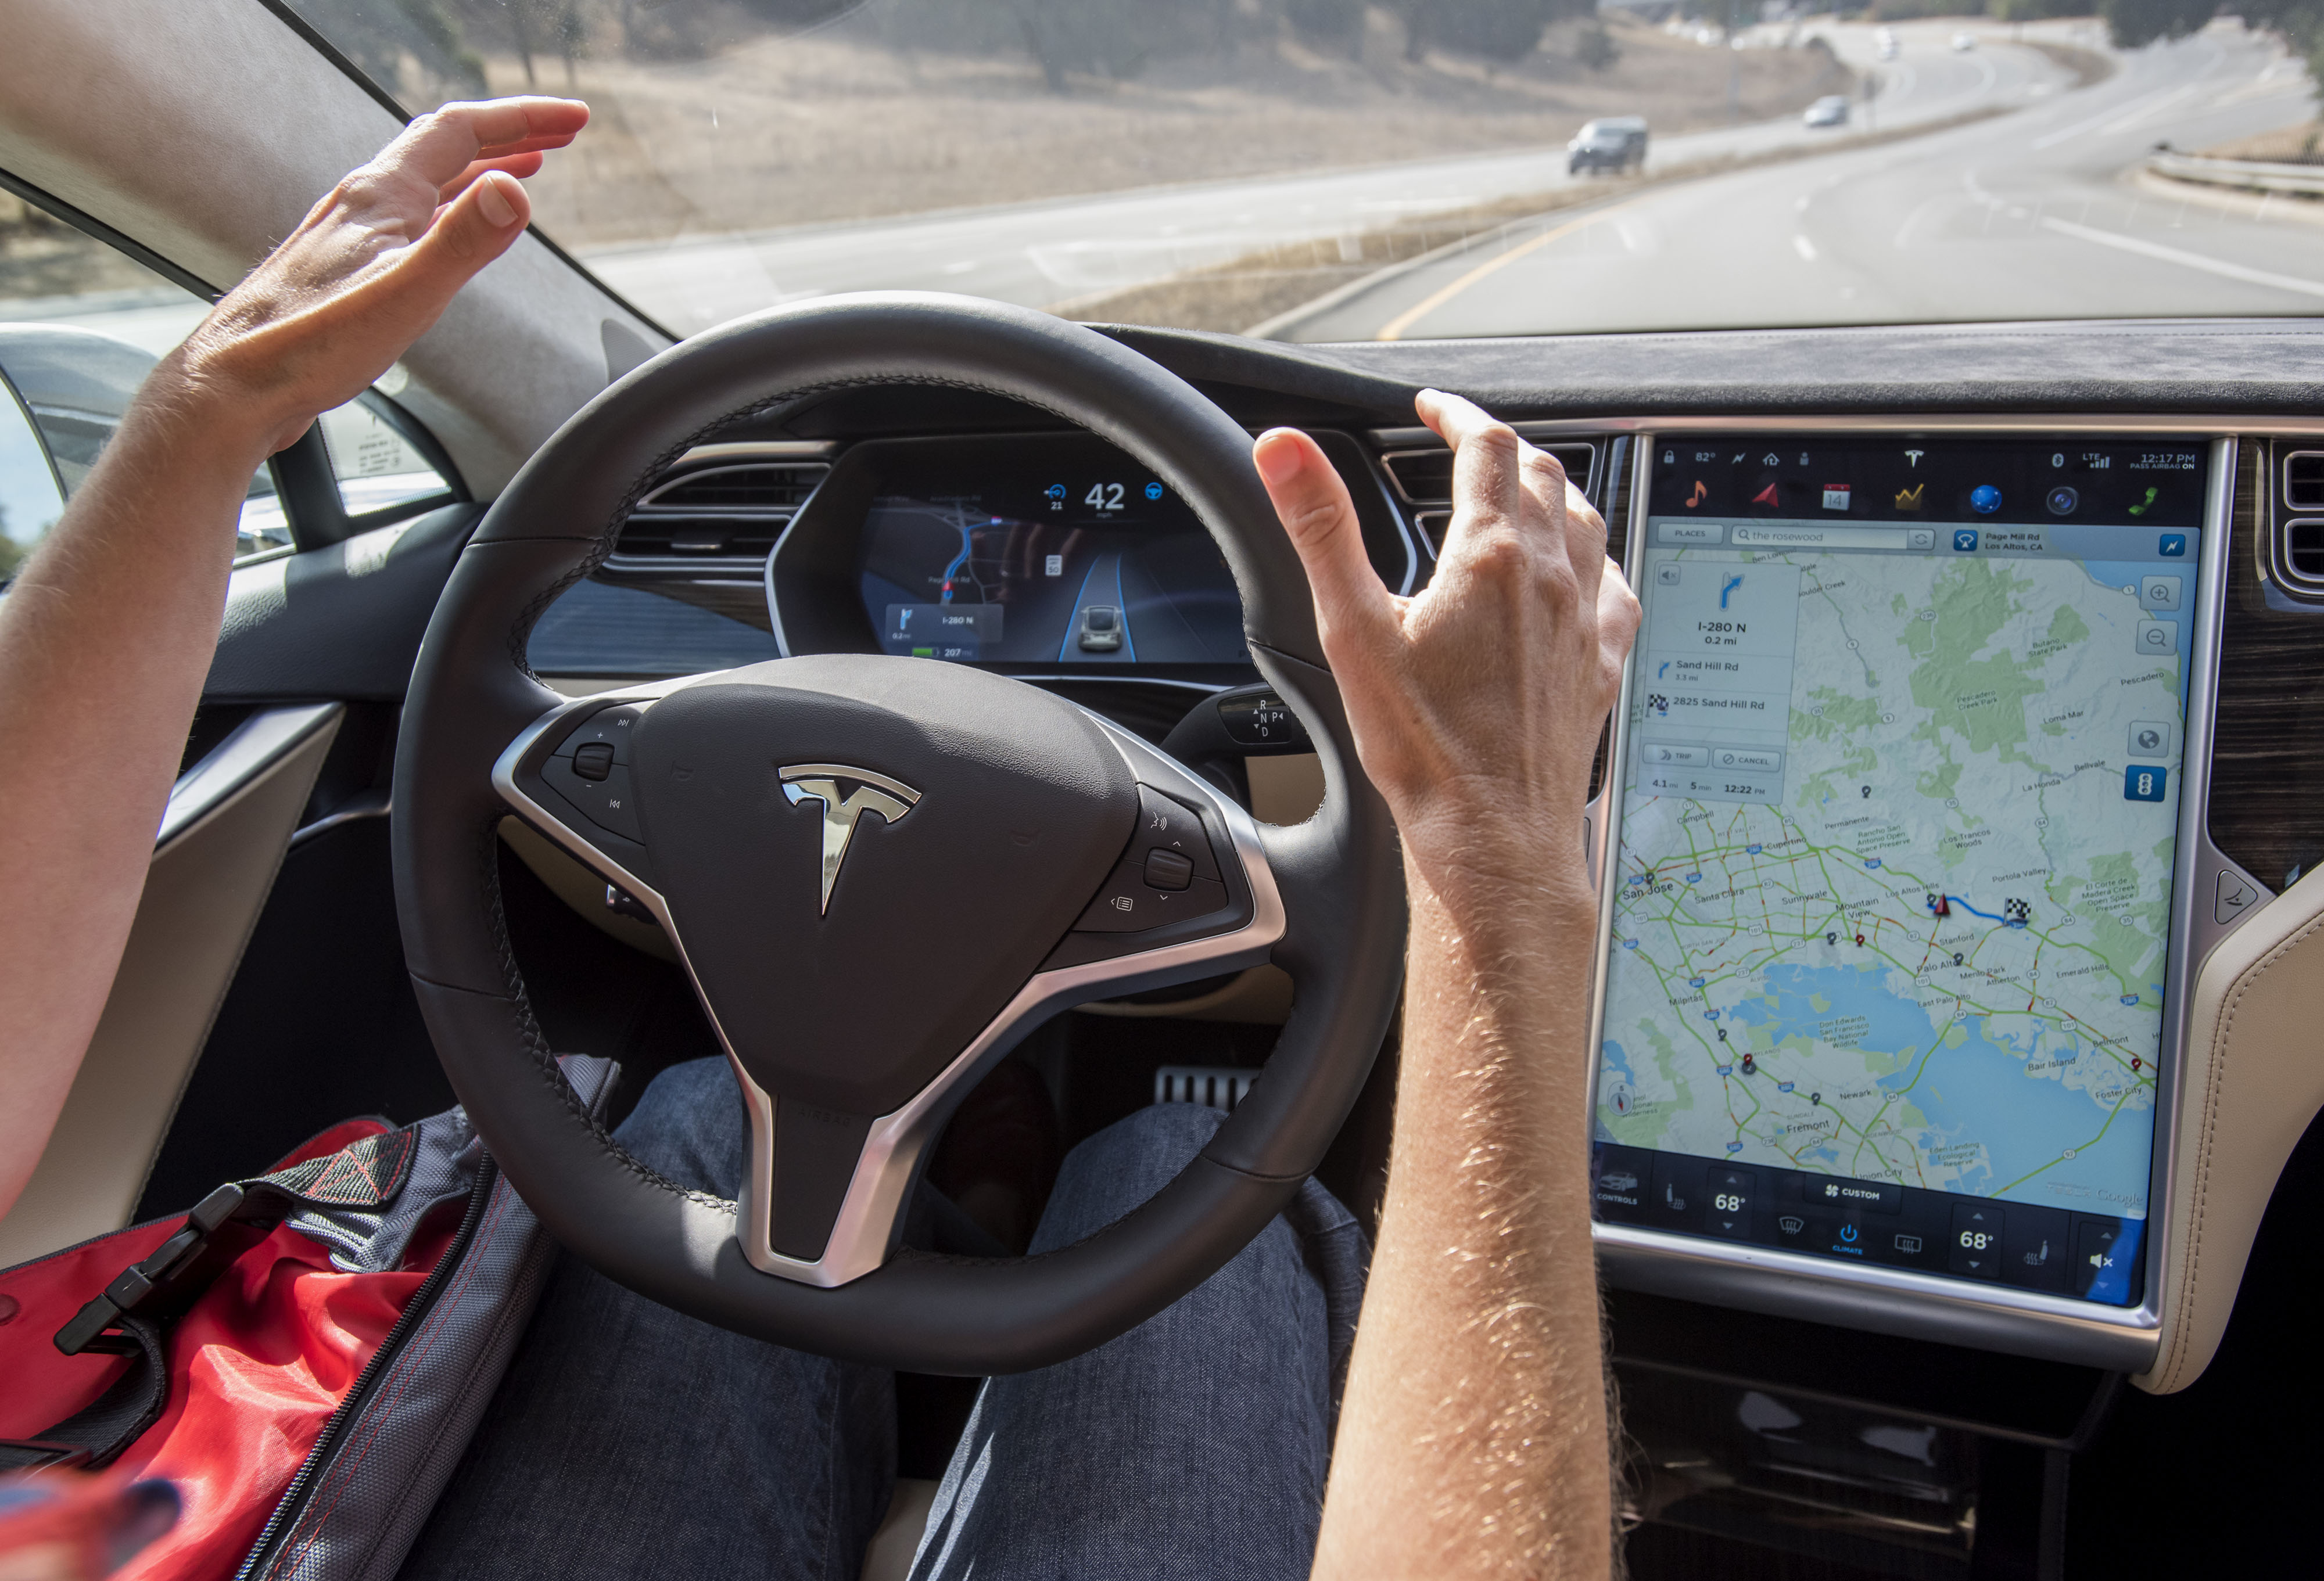 In this Oct. 14, 2015 file photo, a member of the media test drives a Tesla Model S car equipped with Autopilot in Palo Alto, California, U.S.